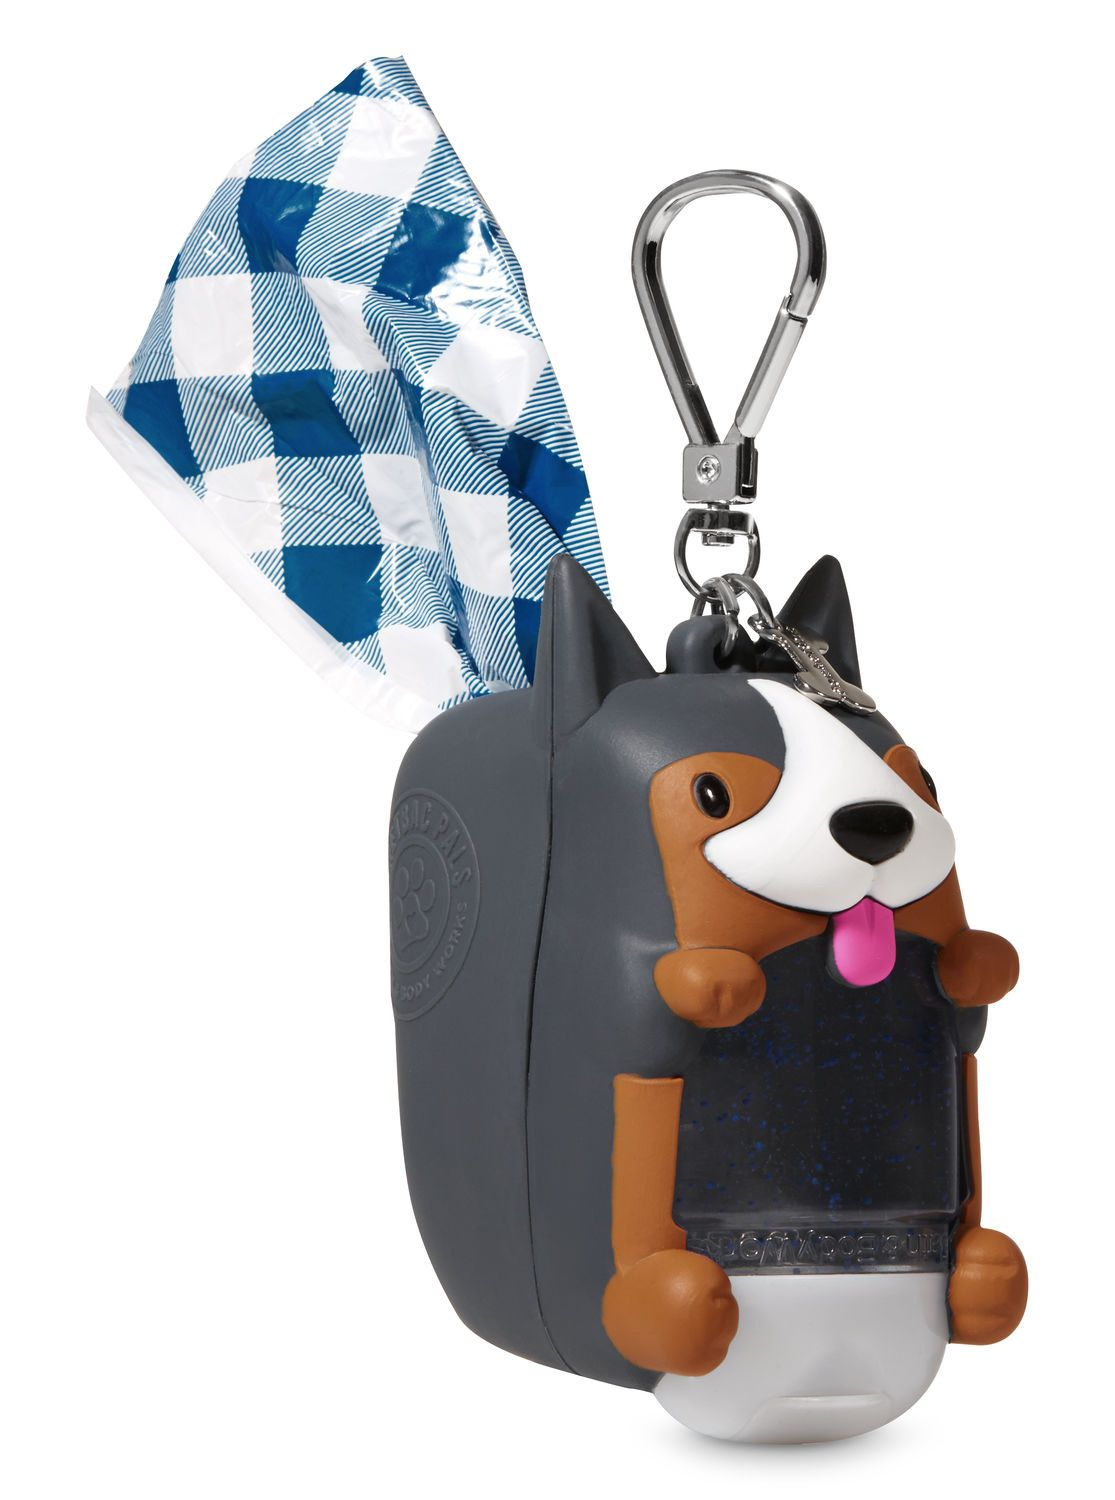 Shepherd Doggie Bag Pocketbac Holder By Bath Body Works Bath